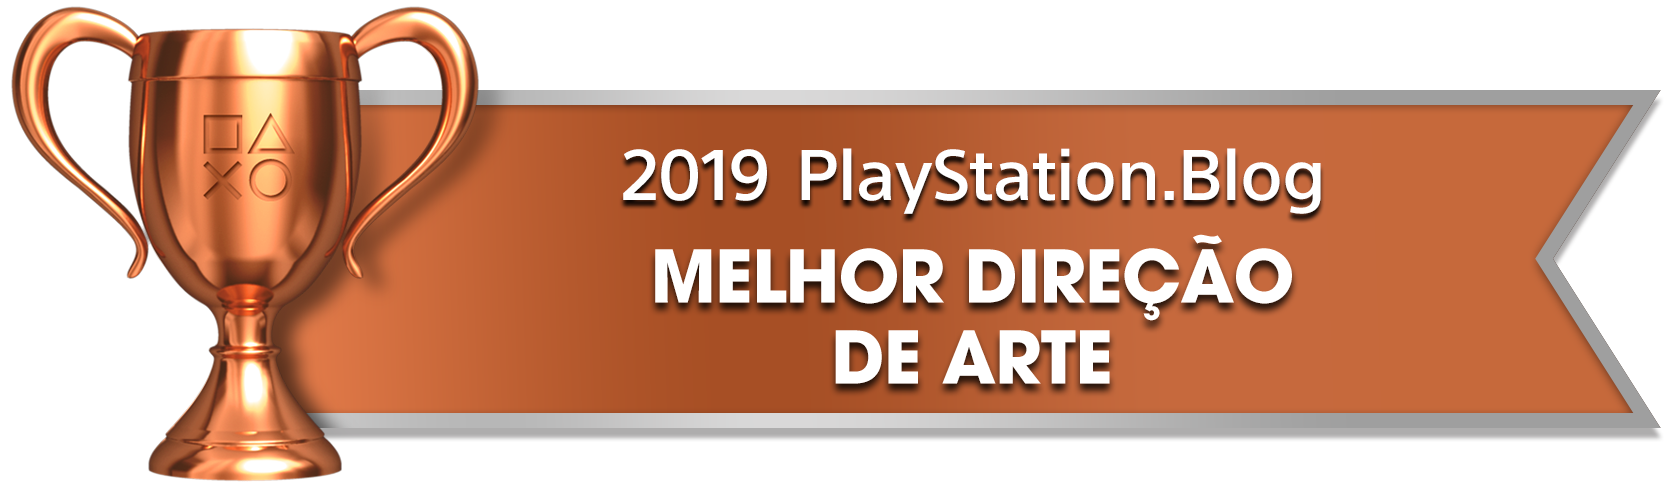 PS Blog Game of the Year 2019 - Best Art Direction - 4 - Bronze